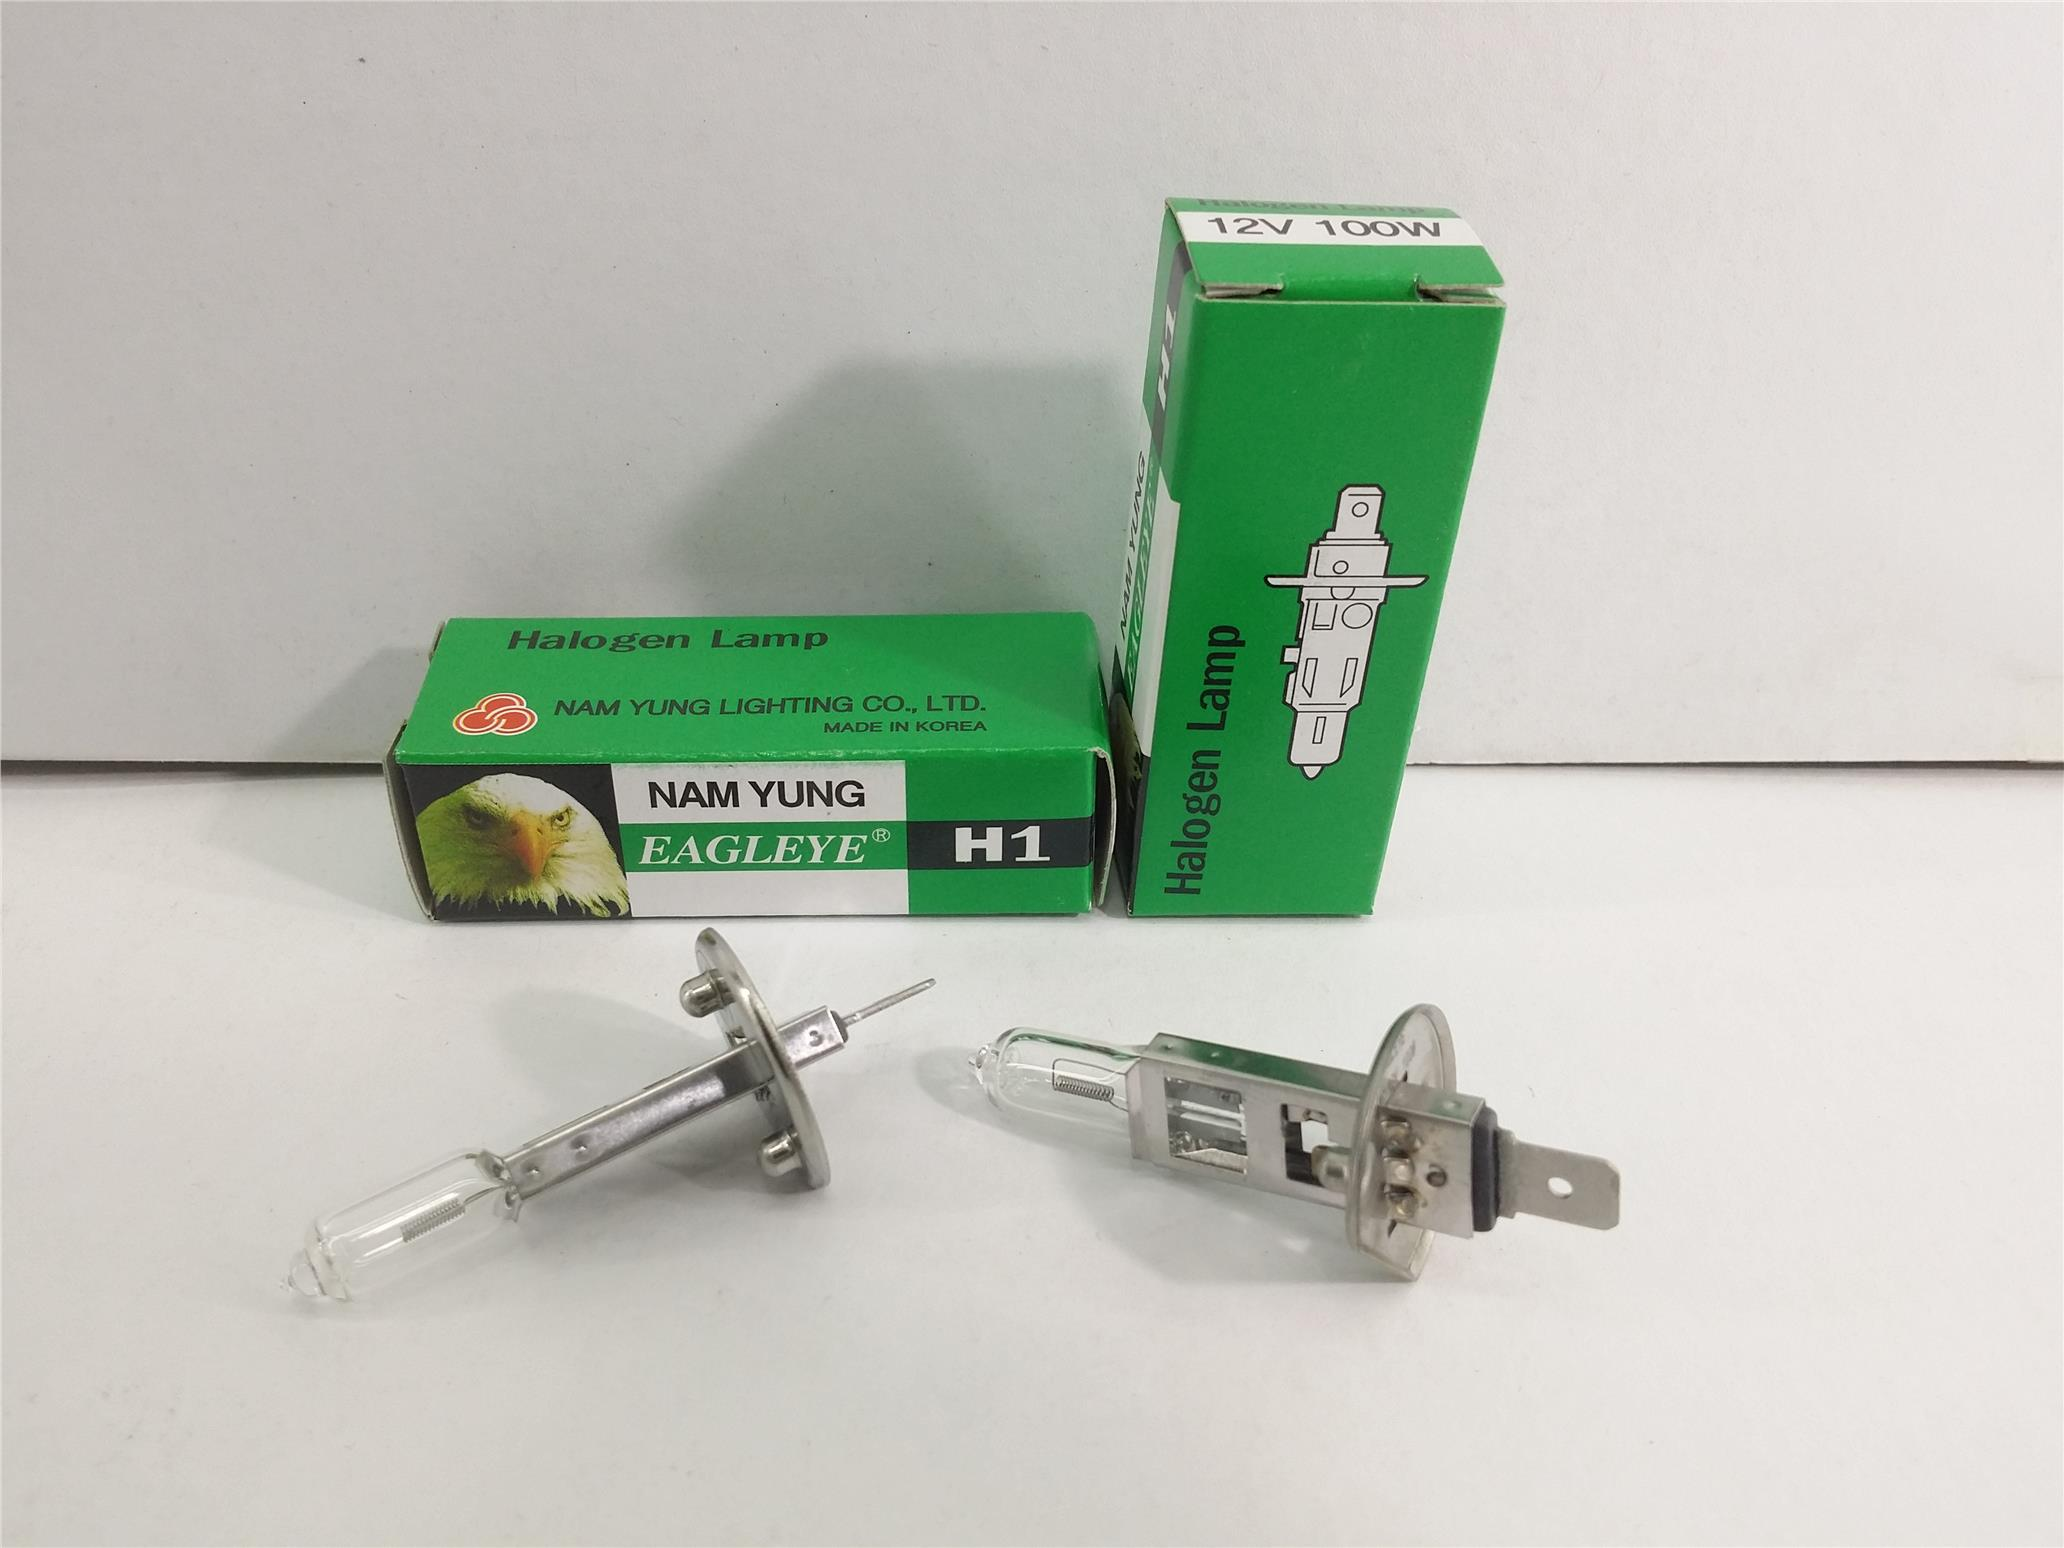 EAGLEYE H1 BULB SET 2 PIECES 12V 100W MADE IN KOREA NAM YUNG